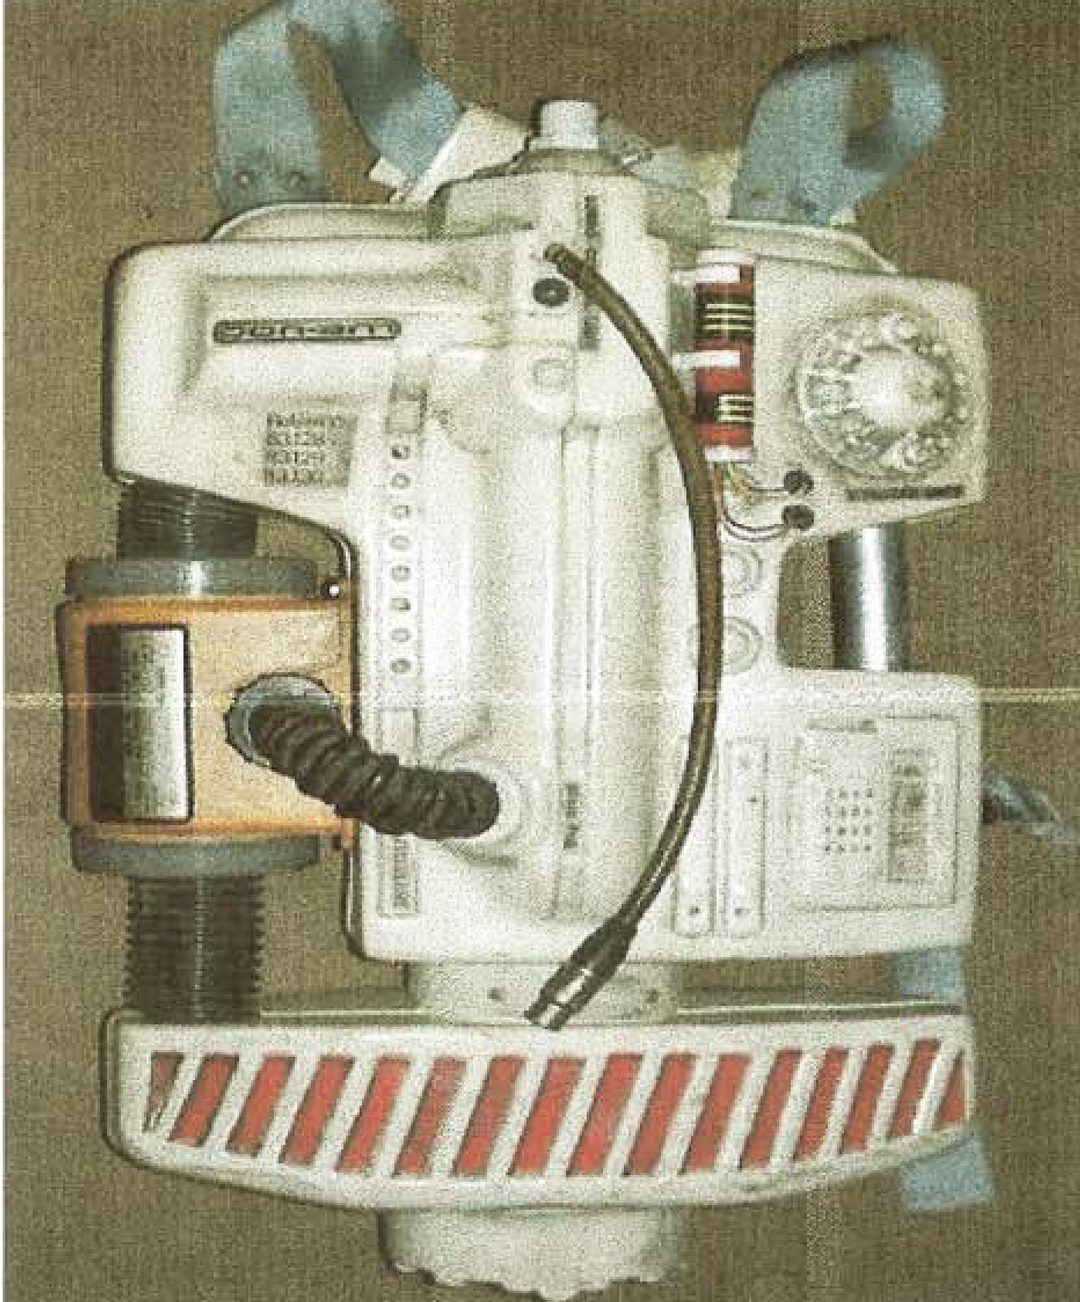 Design of the Back Pack - The functionality of the air circulating system more or less determined the overall shape of the Back Pack. It had to house the Martindale filter and incorporate a feed from the back of the helmet.The rest of the design of the Back Pack was covered in `Greeblies`.. Odds and ends of embellishments to satisfy the imagination of what the item would possibly look like.This always was a fun part of creating film props, especially as it often relied on whatever was lying around on the shop floor.